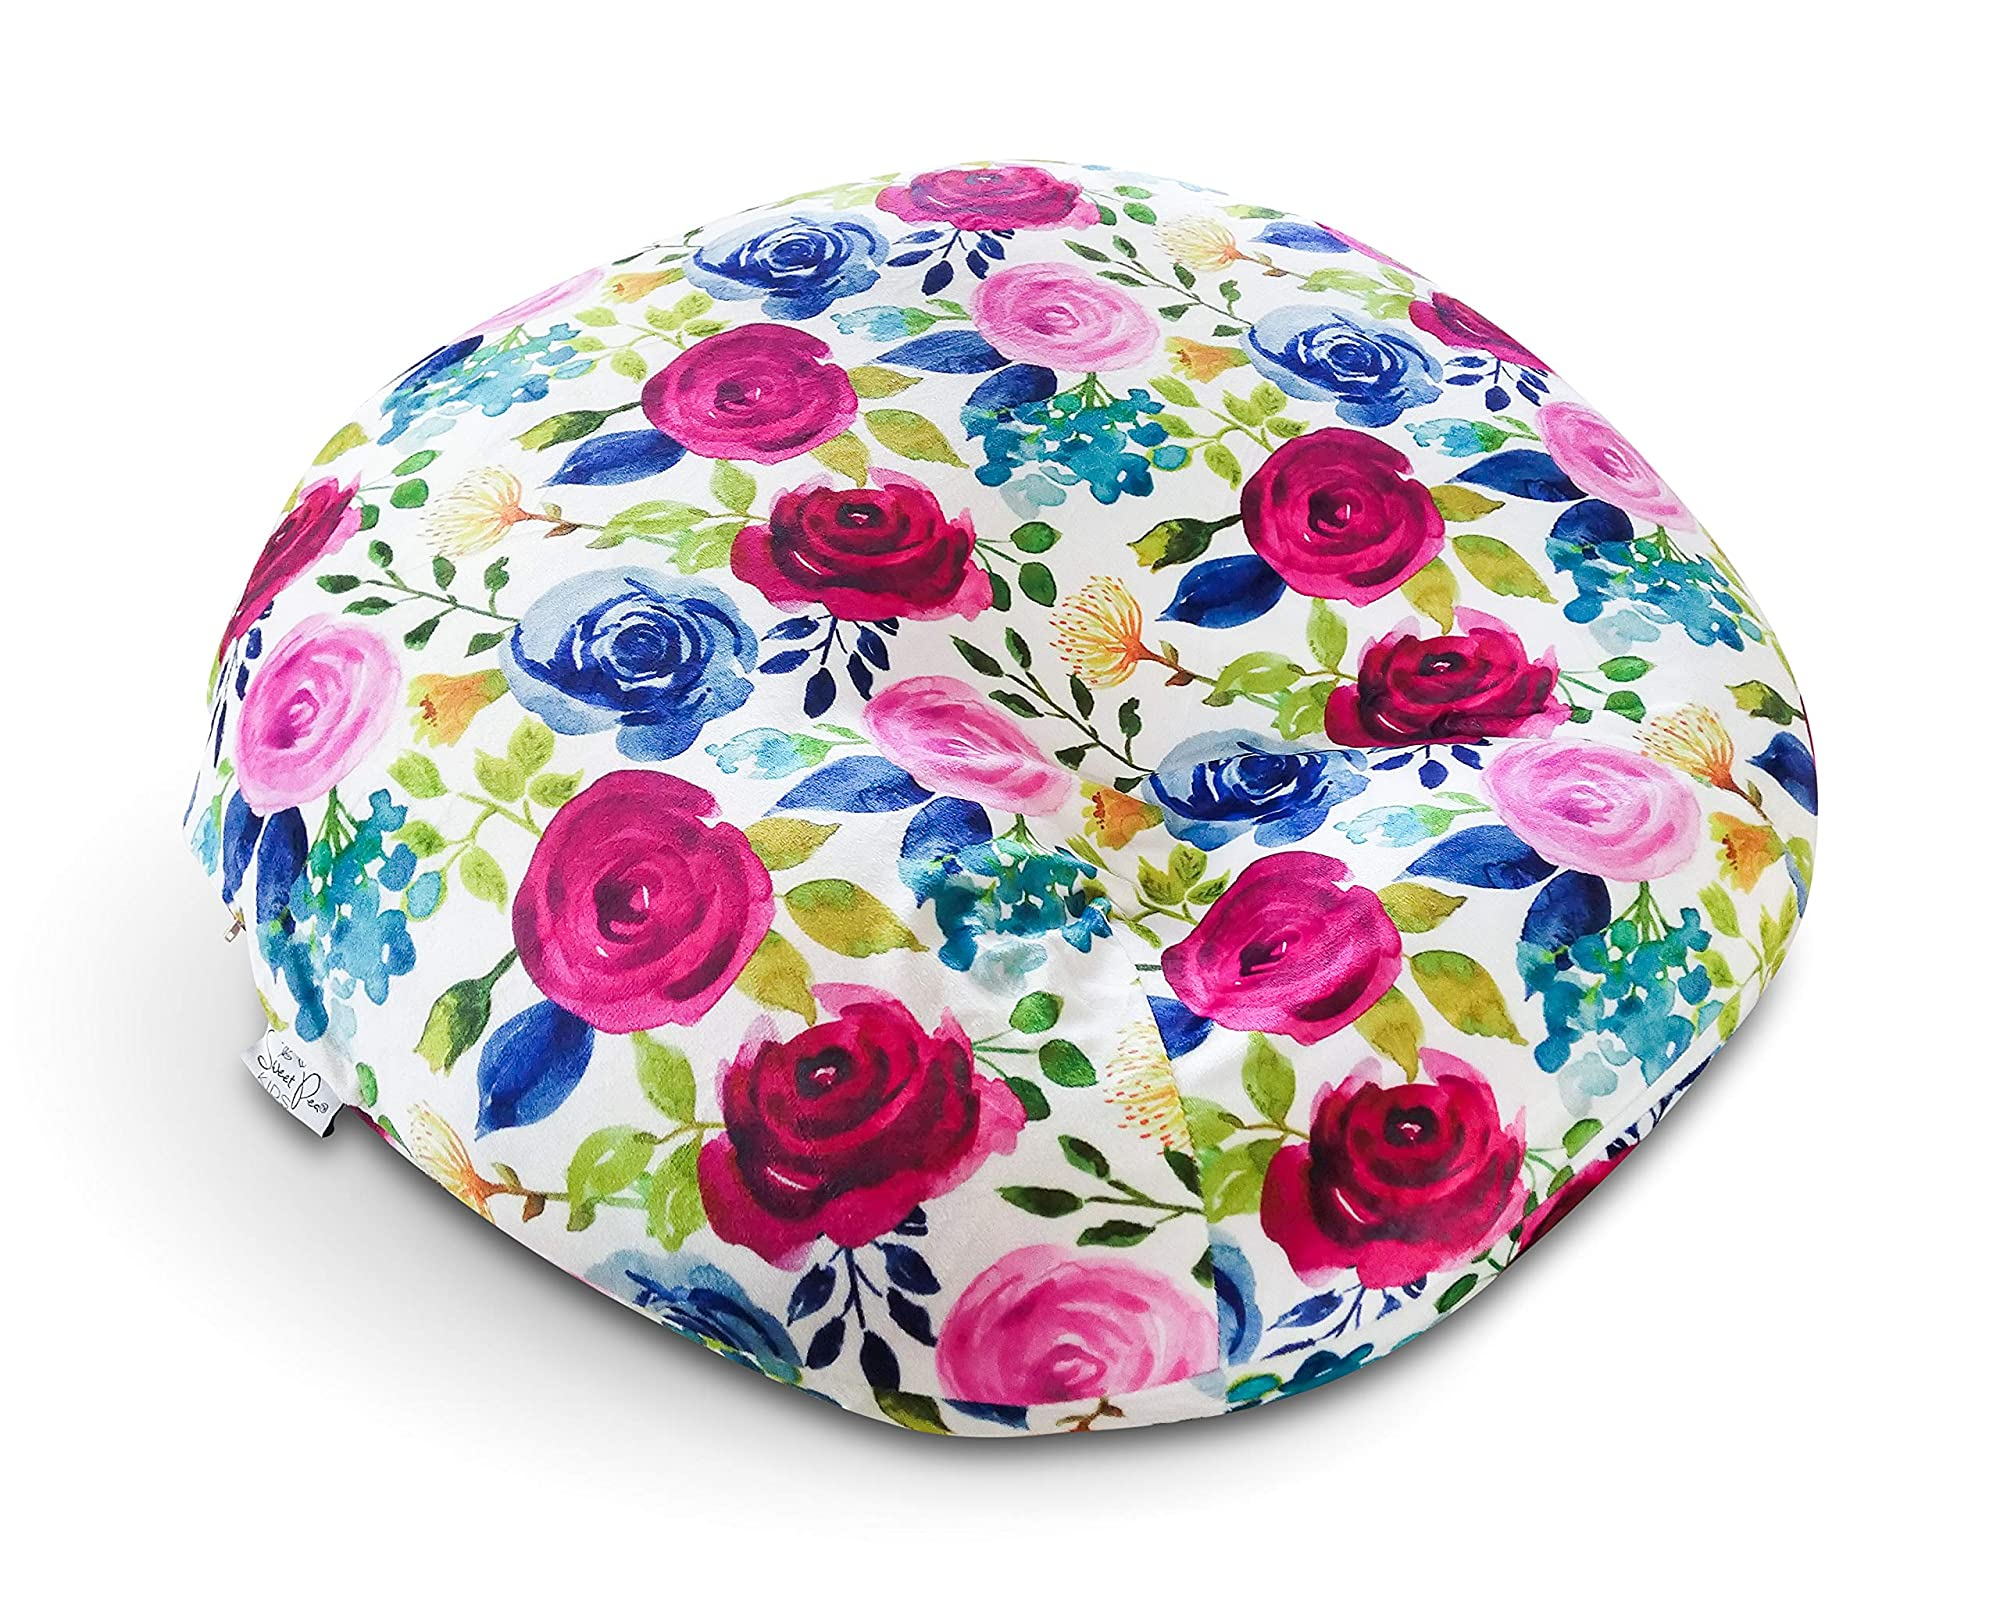 Infant Lounger Soft Pillow Cover